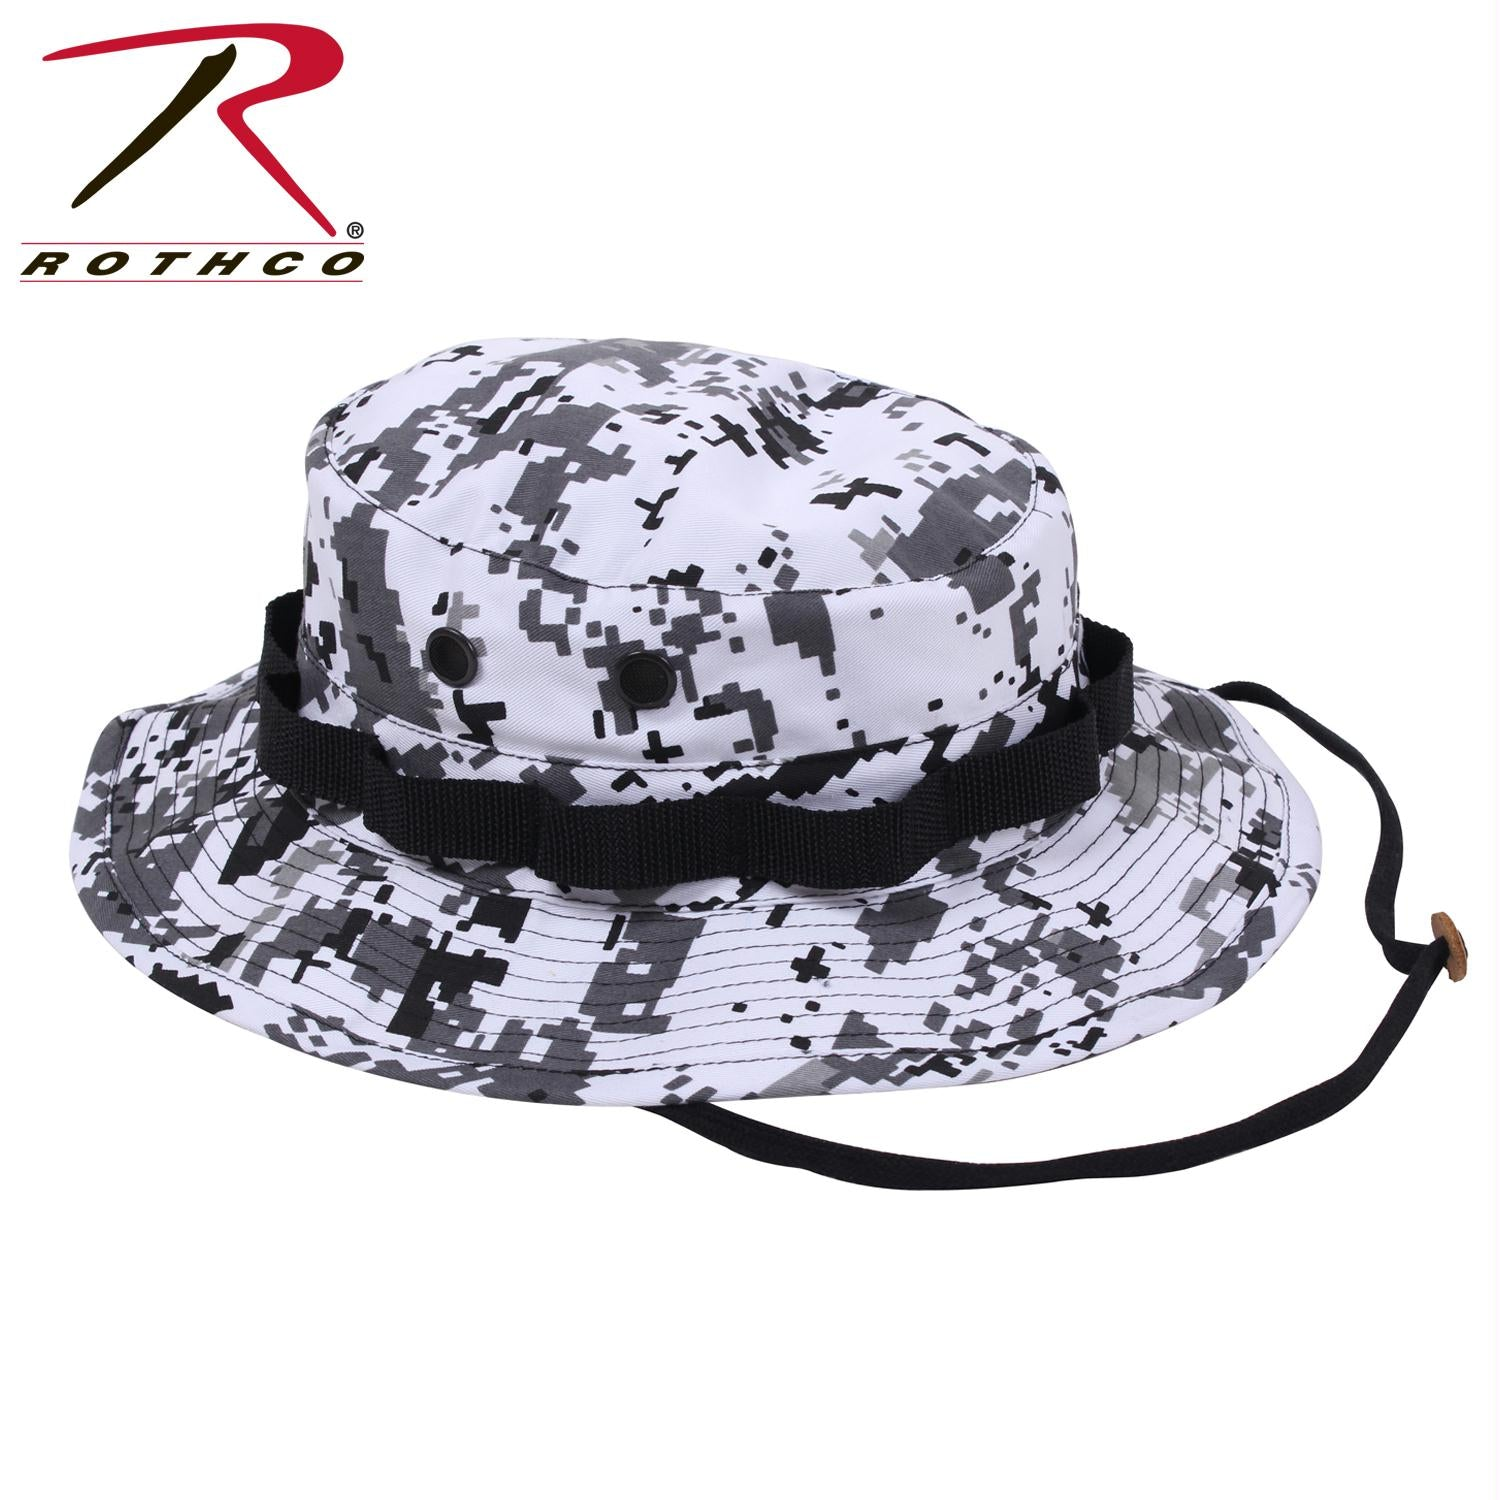 Rothco Digital Camo Boonie Hat - City Digital Camo / 7